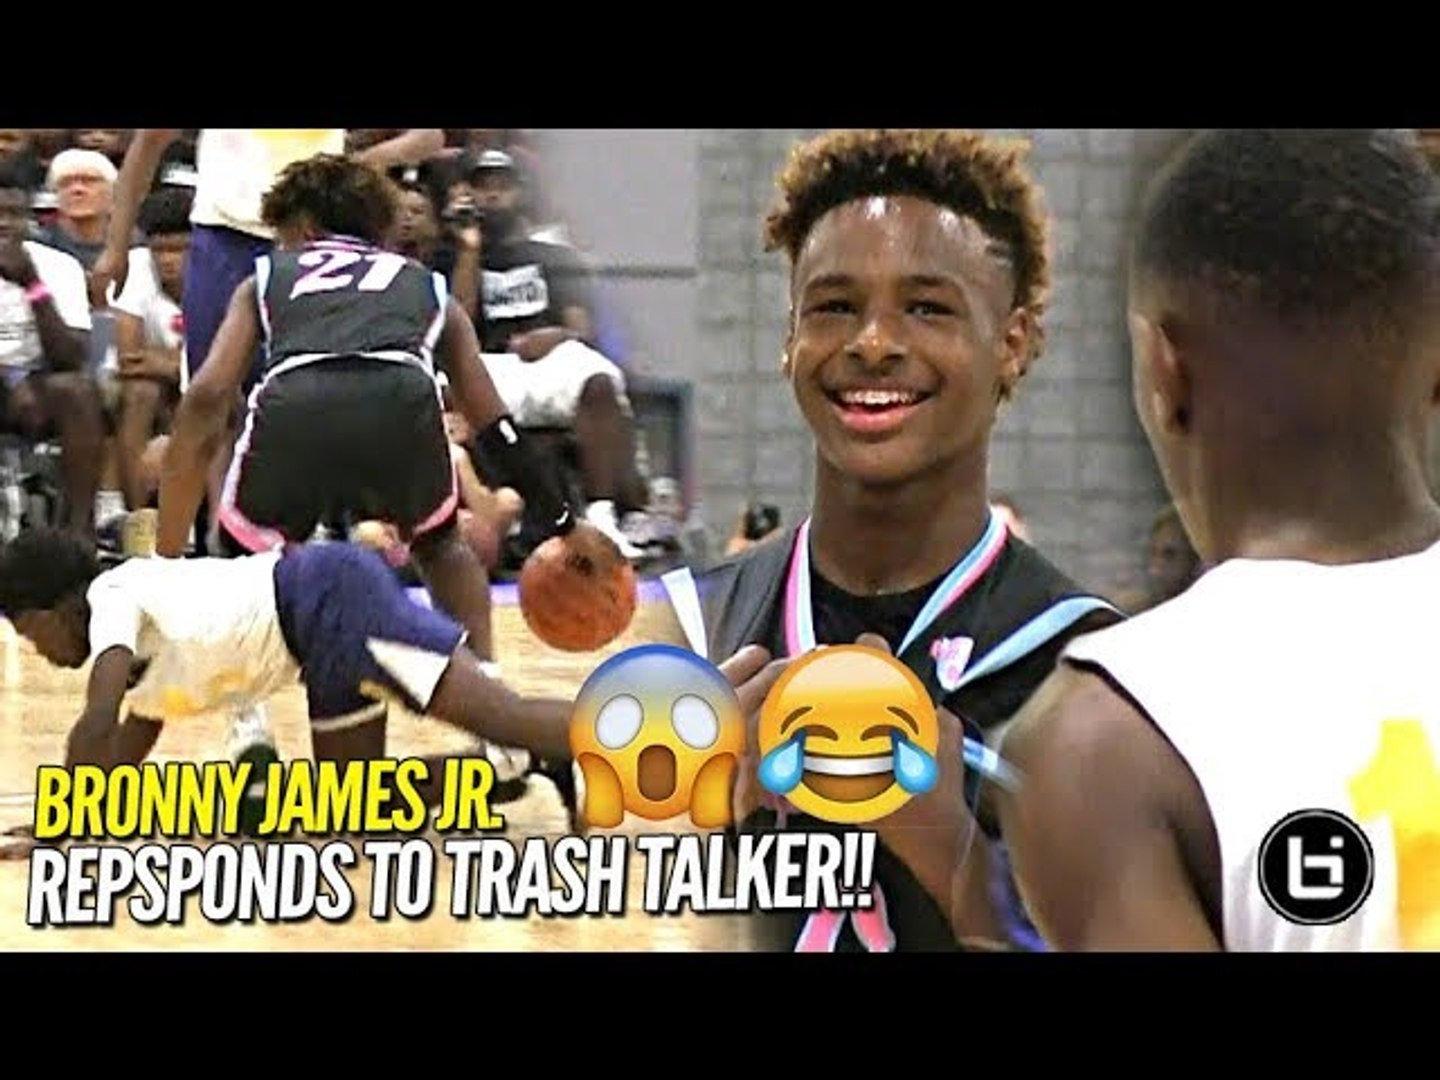 Bronny James Jr Responds To Trash Talker At First Day Of Usba Nationals Full Highlights Video Dailymotion